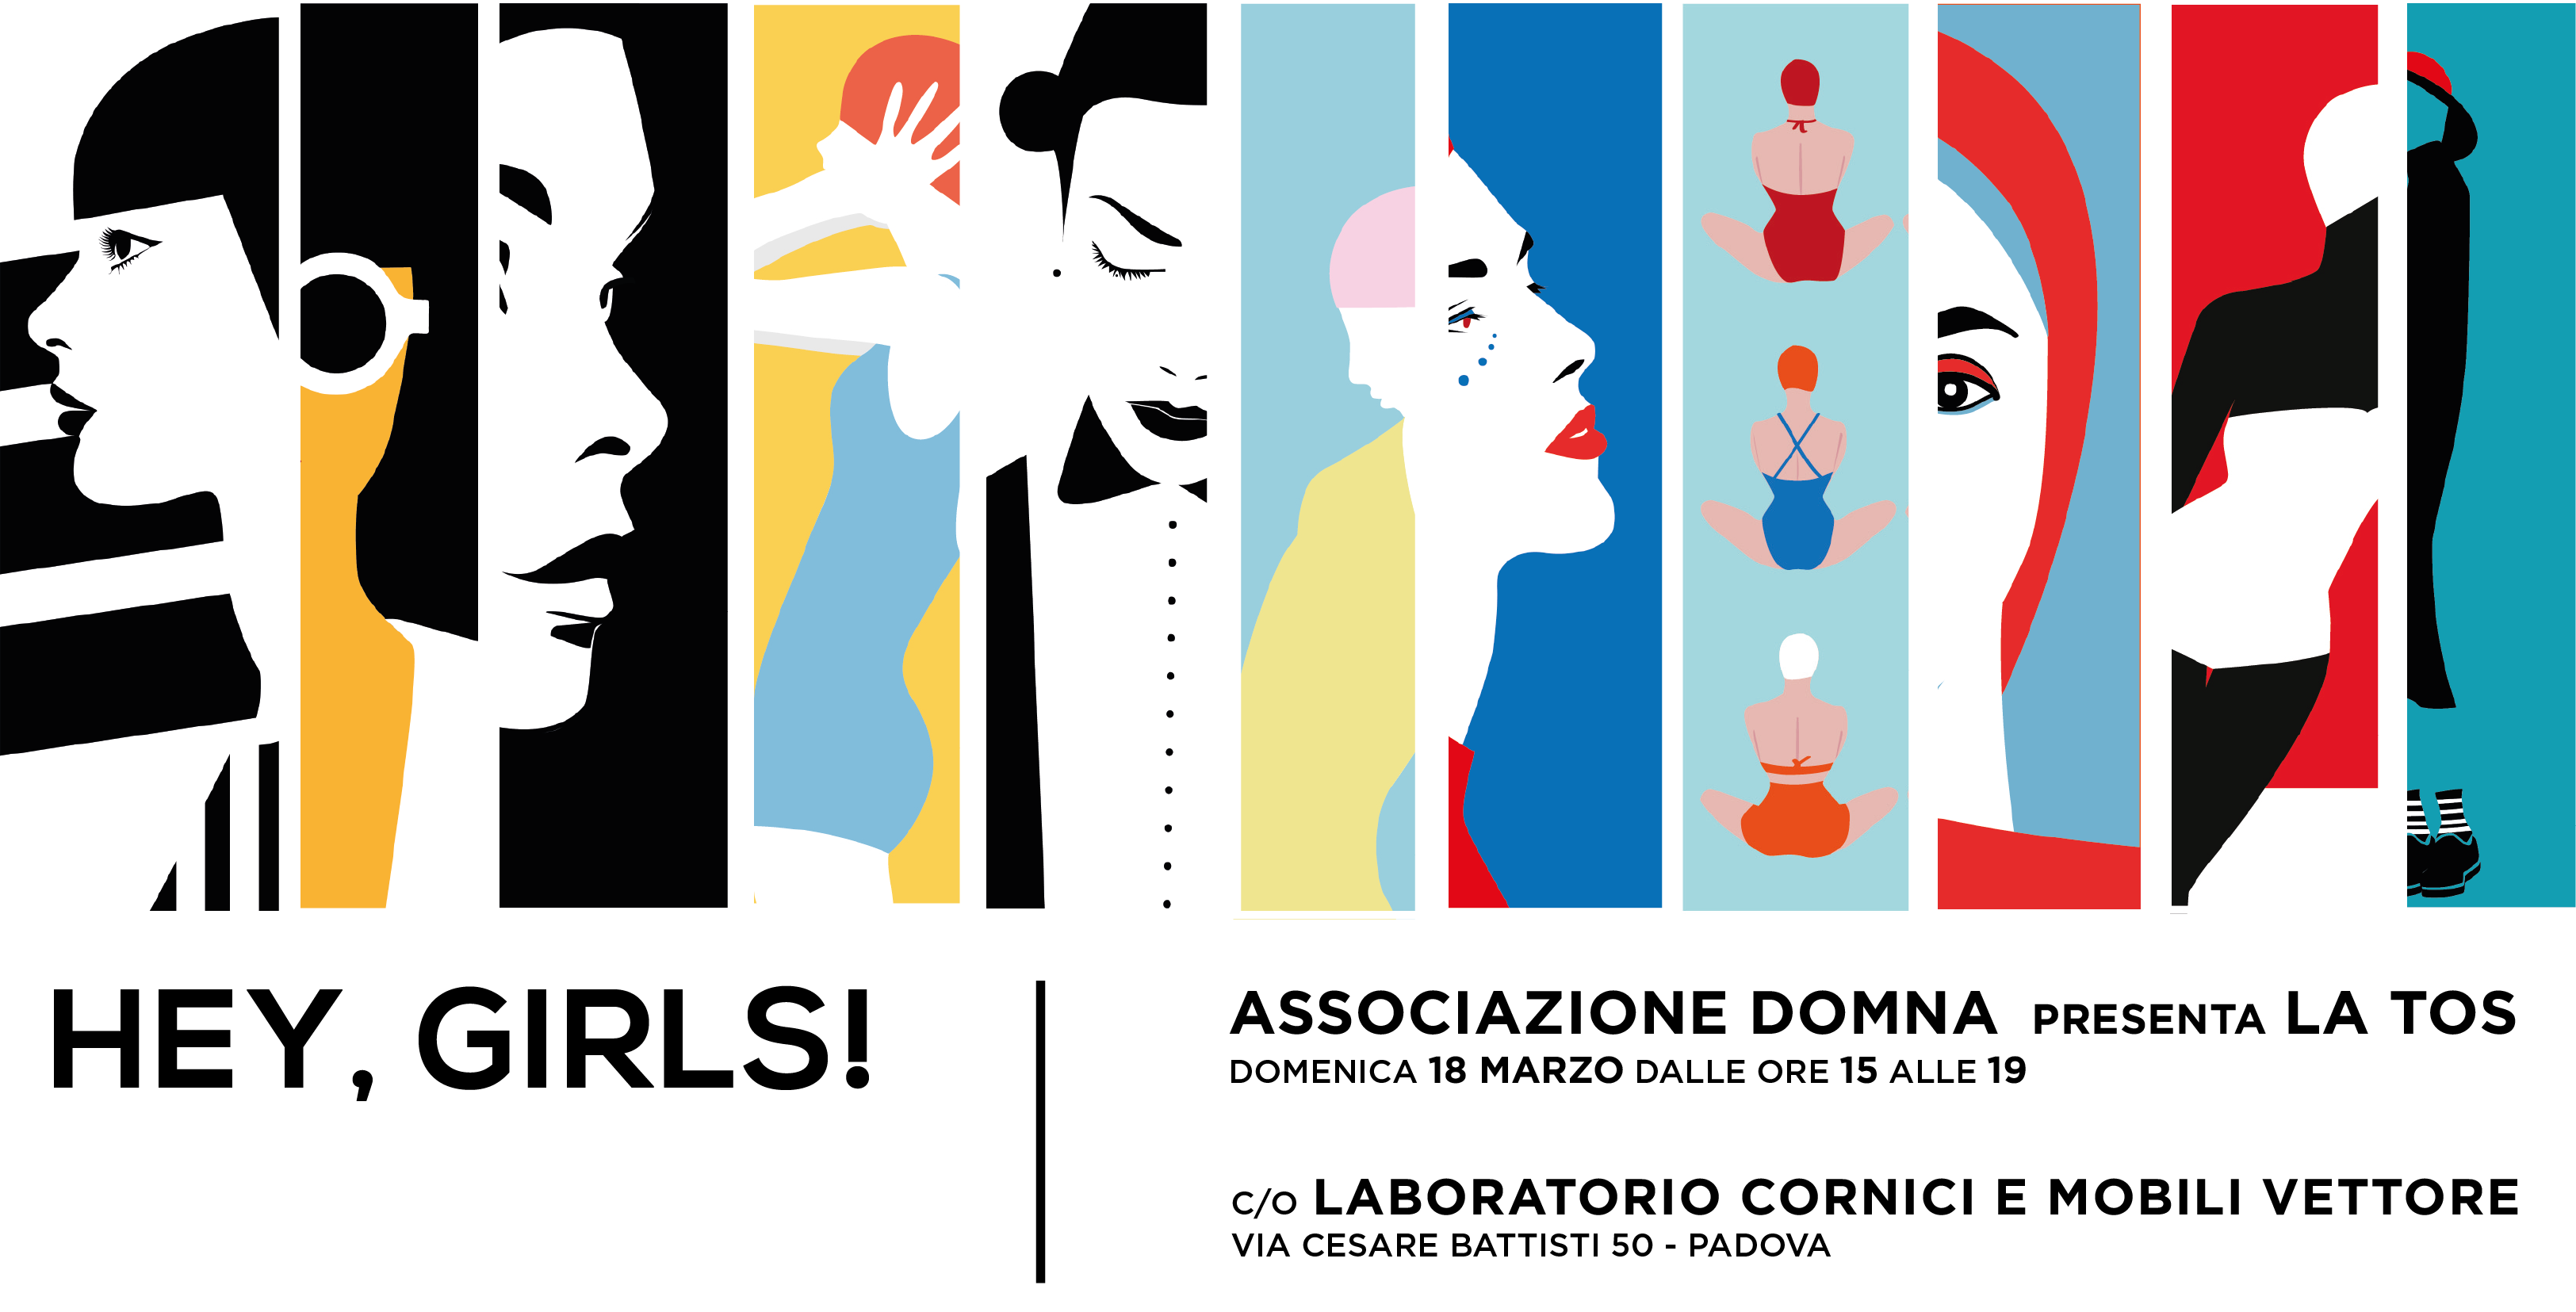 Hey, Girls! <strong>LA TOS in mostra</strong>